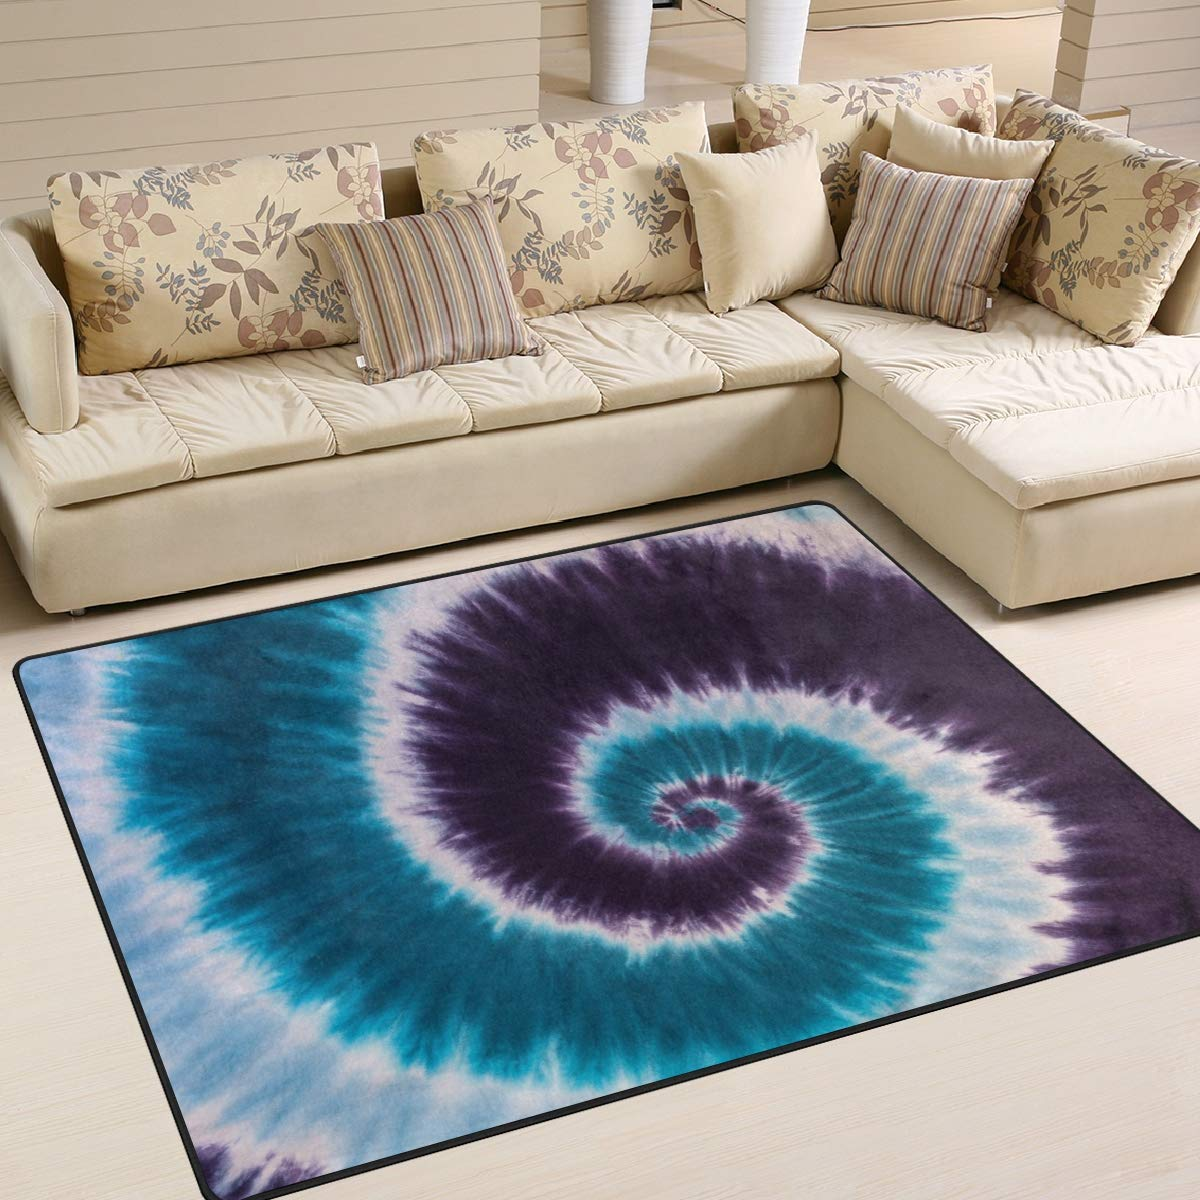 ALAZA Home Decoration Blue Purple Tie Dye Abstract Large Rug Floor Carpet Yoga Mat, Modern Area Rug for Children Kid Playroom Bedroom, 5' x 7'